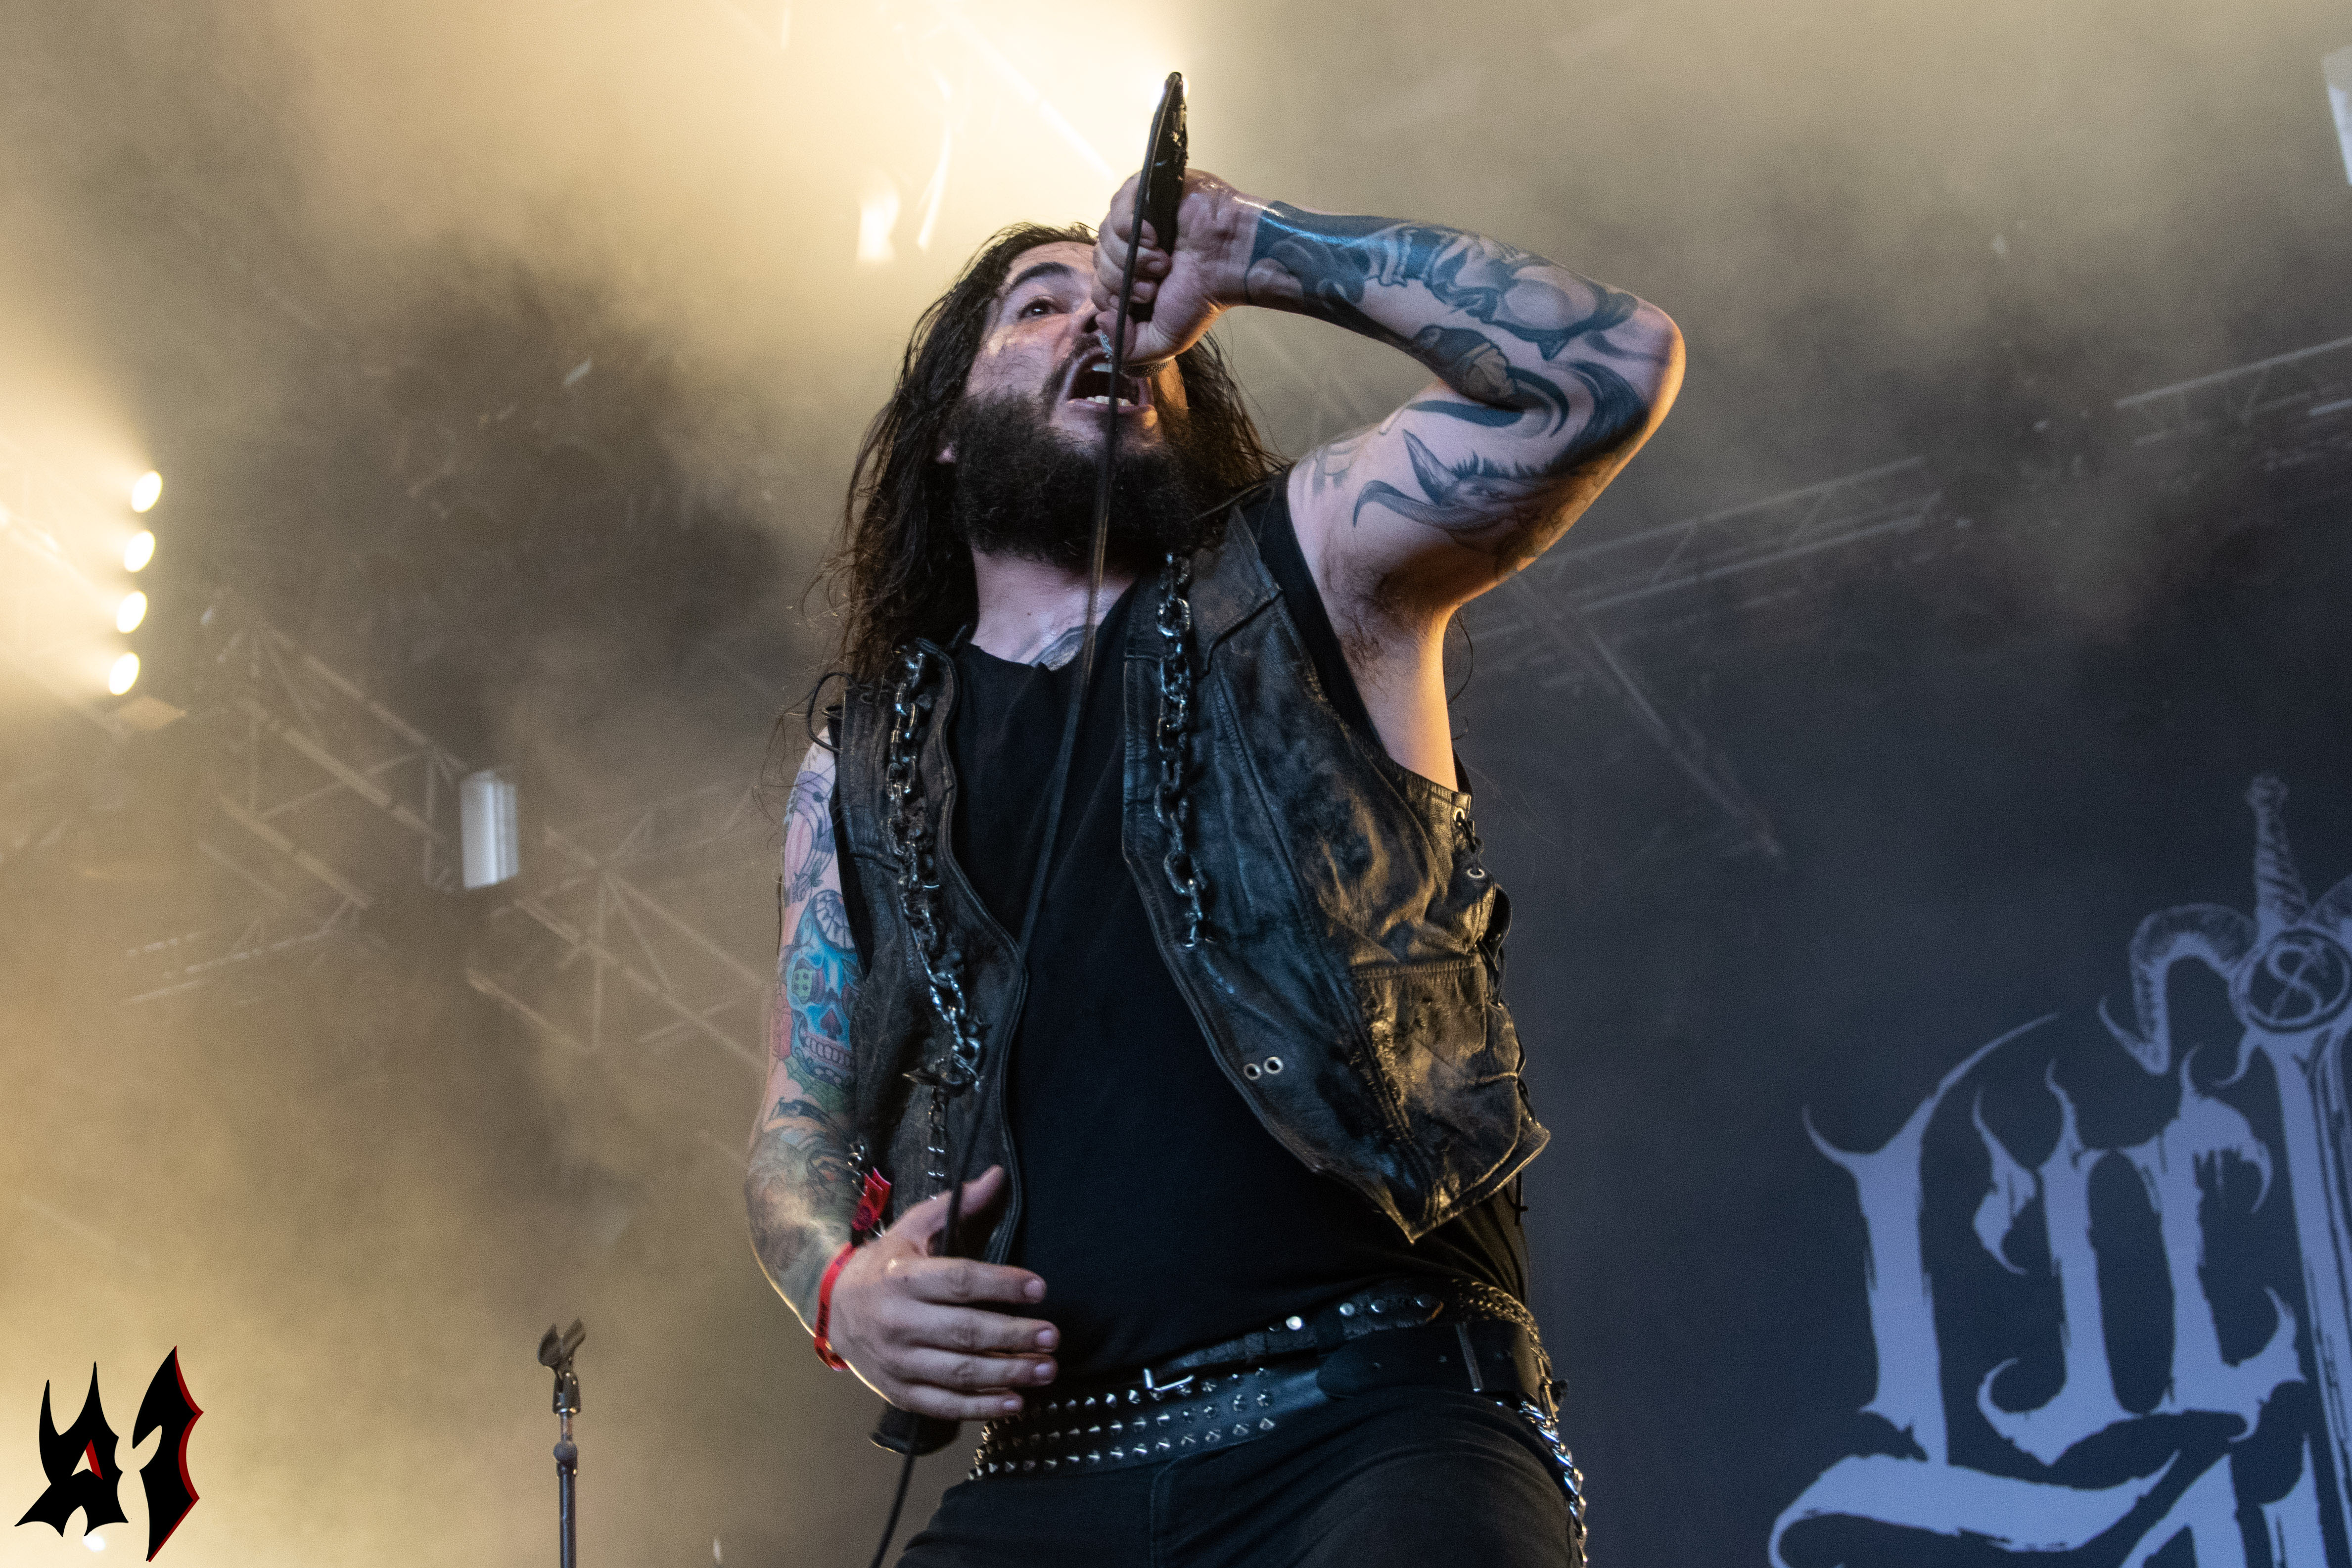 Hellfest - Lucifer's Child - 3